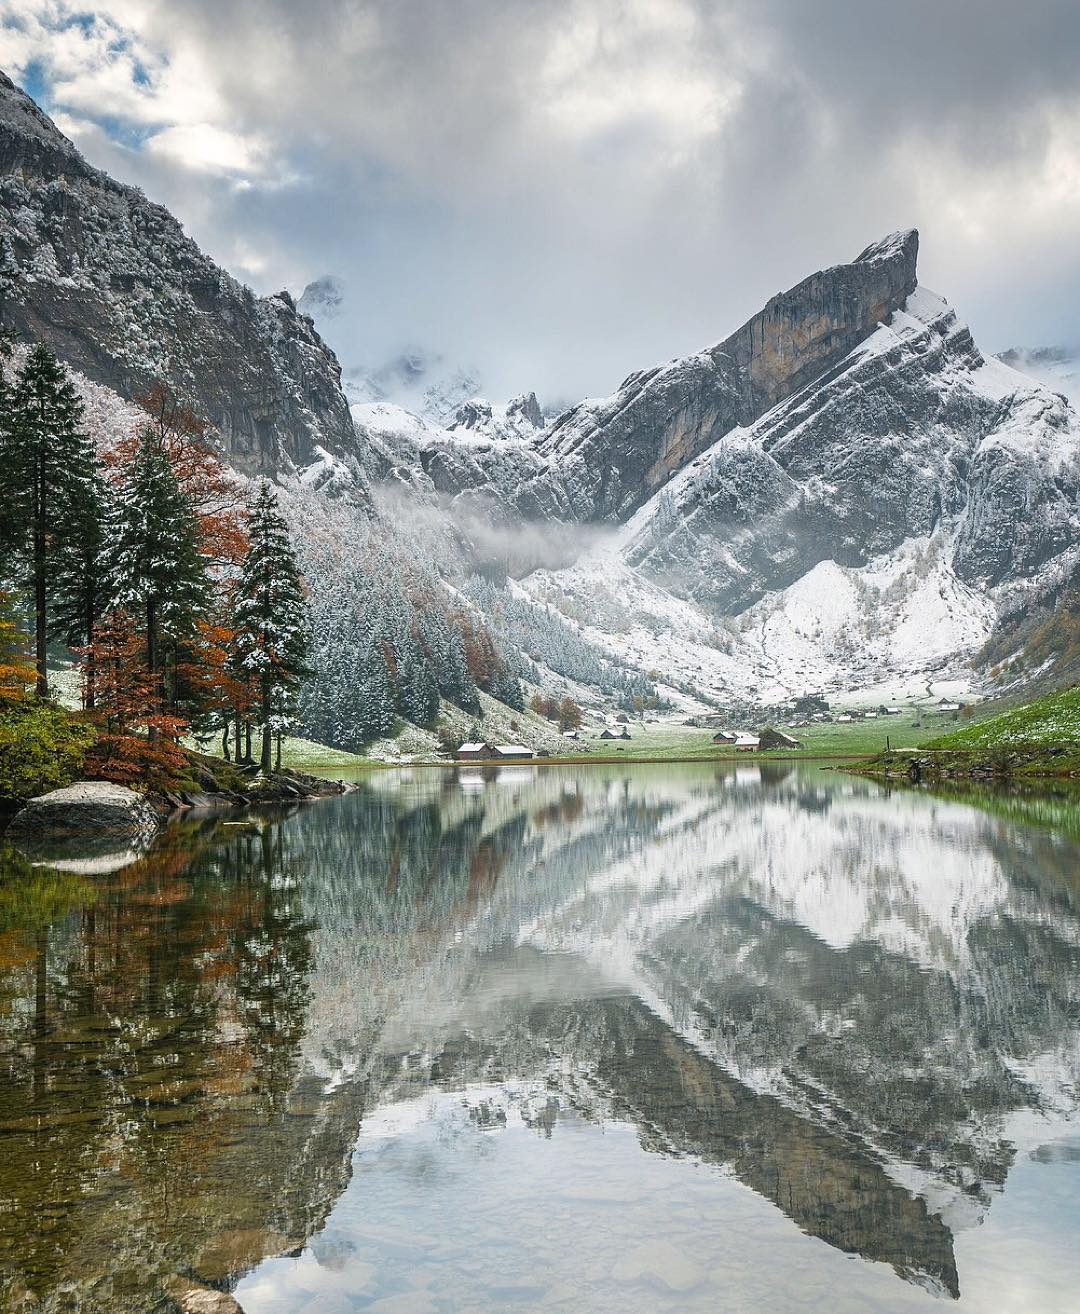 Reflections in the Swiss Alps   Photo by @chrisburkard https://t.co/MRVMBAADeK